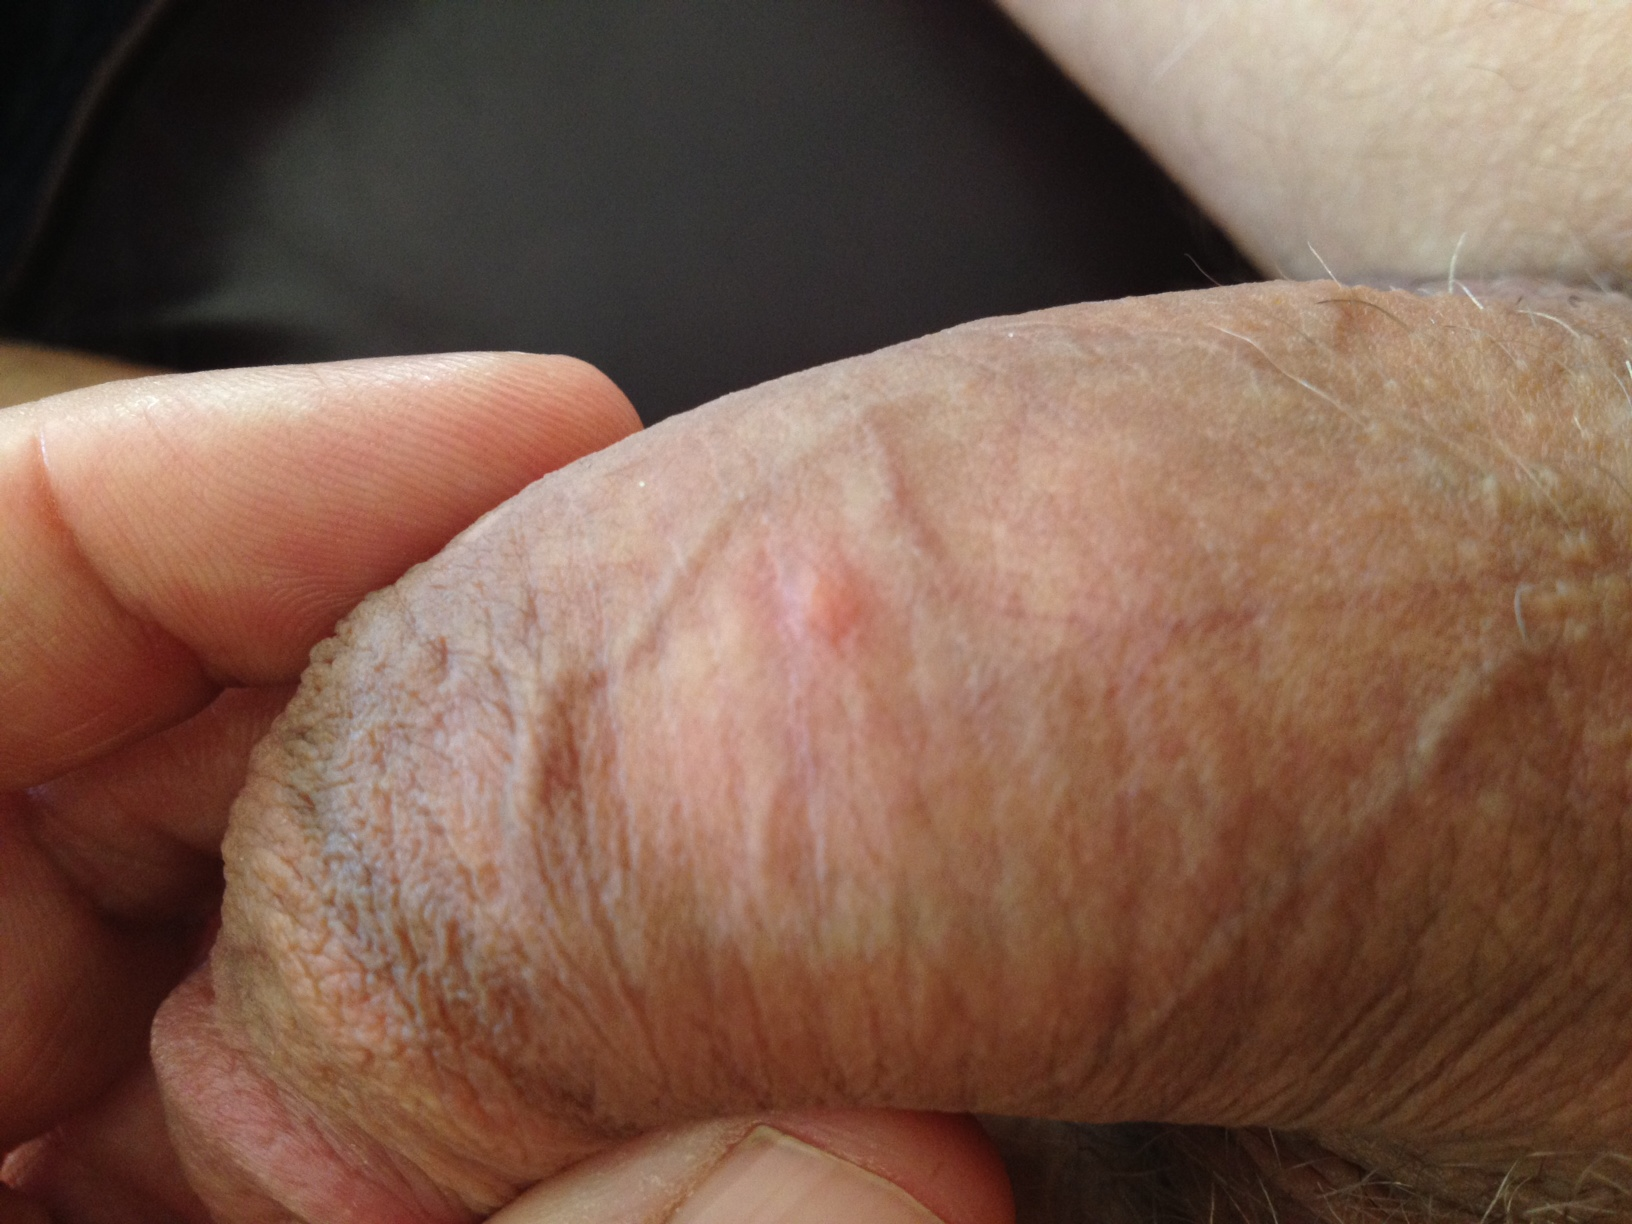 Small Red Bump On Penis 36